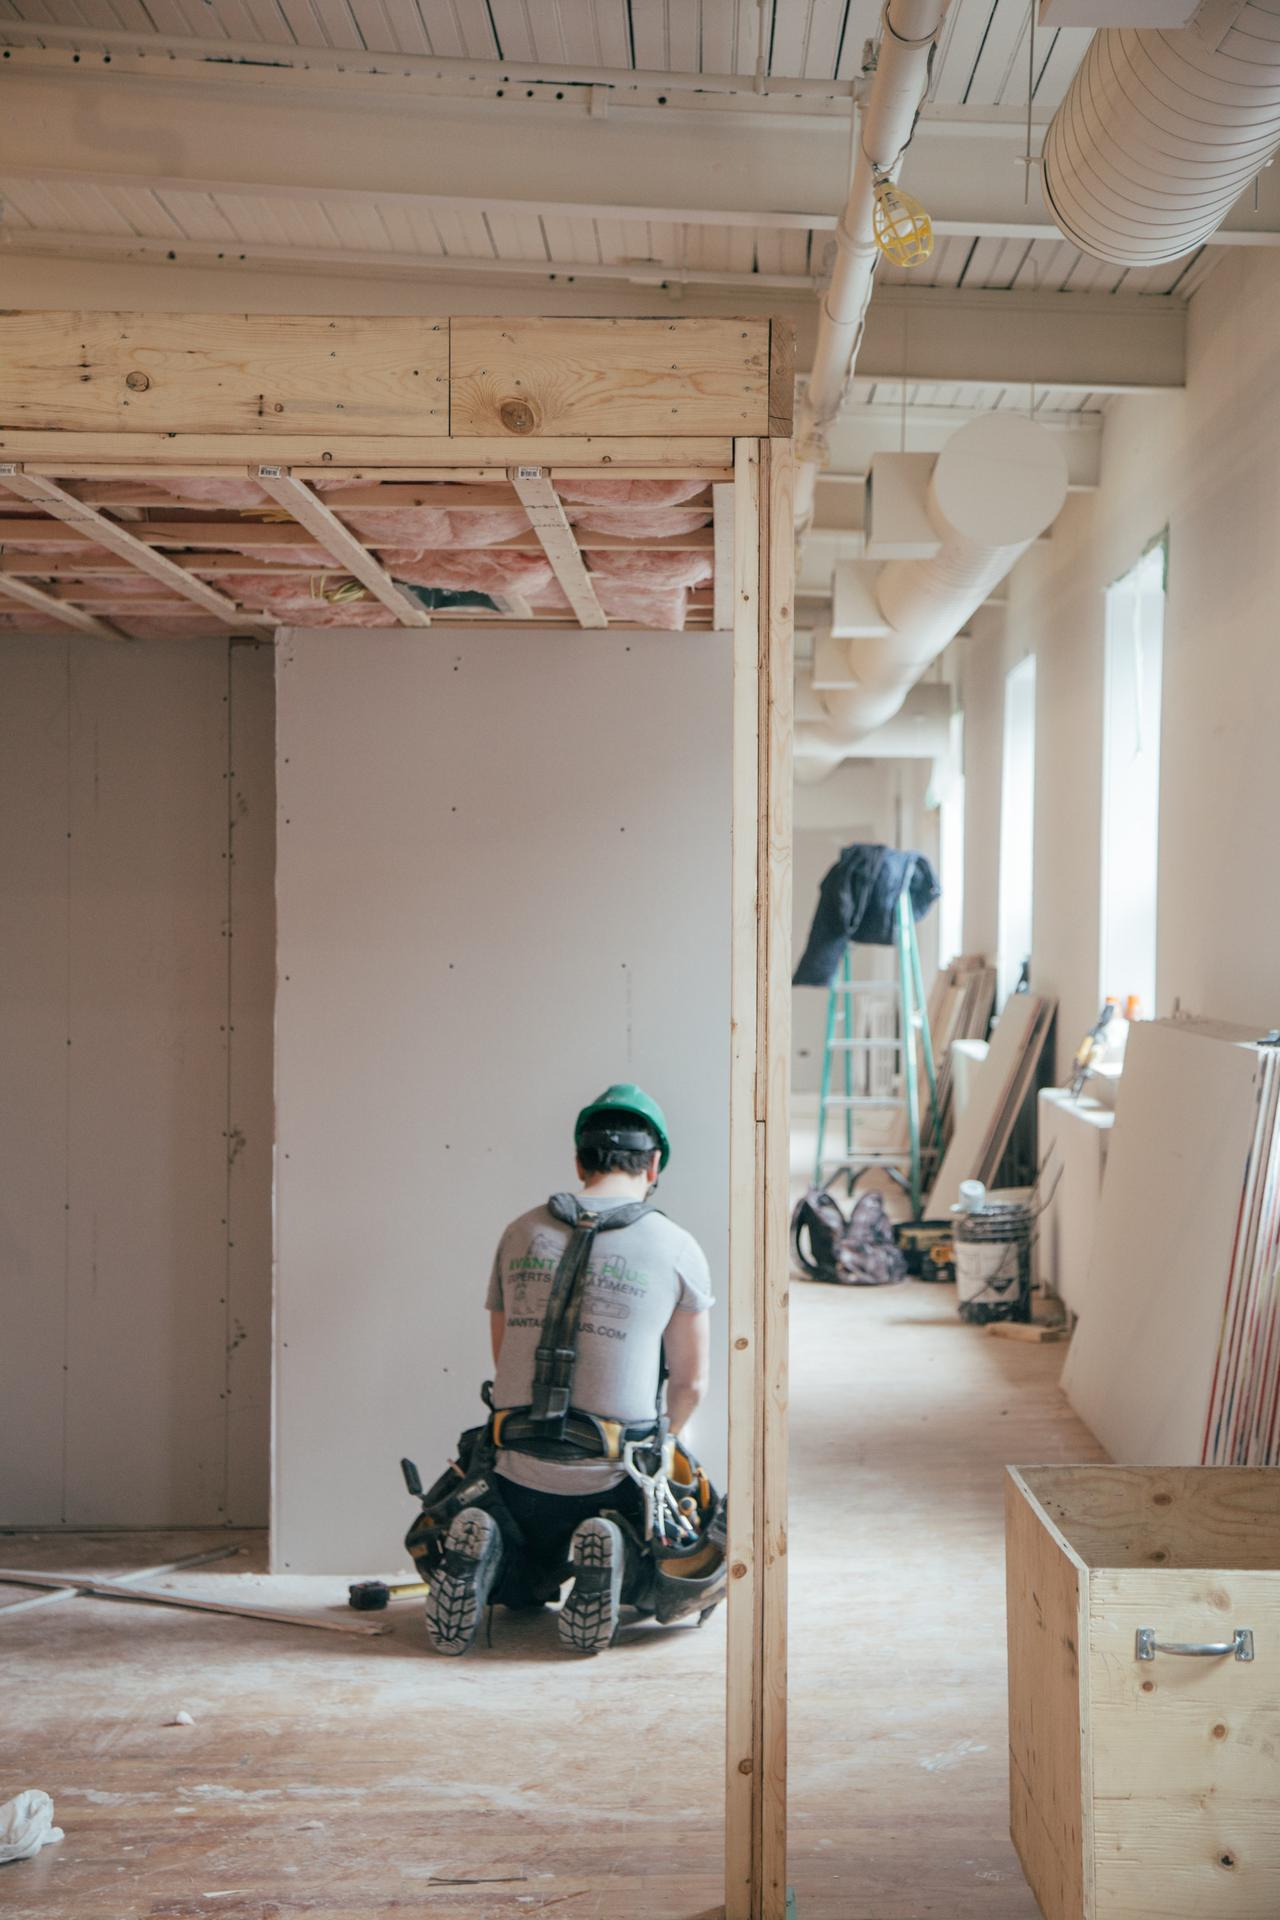 general contractor in Missouri working on a home renovation project